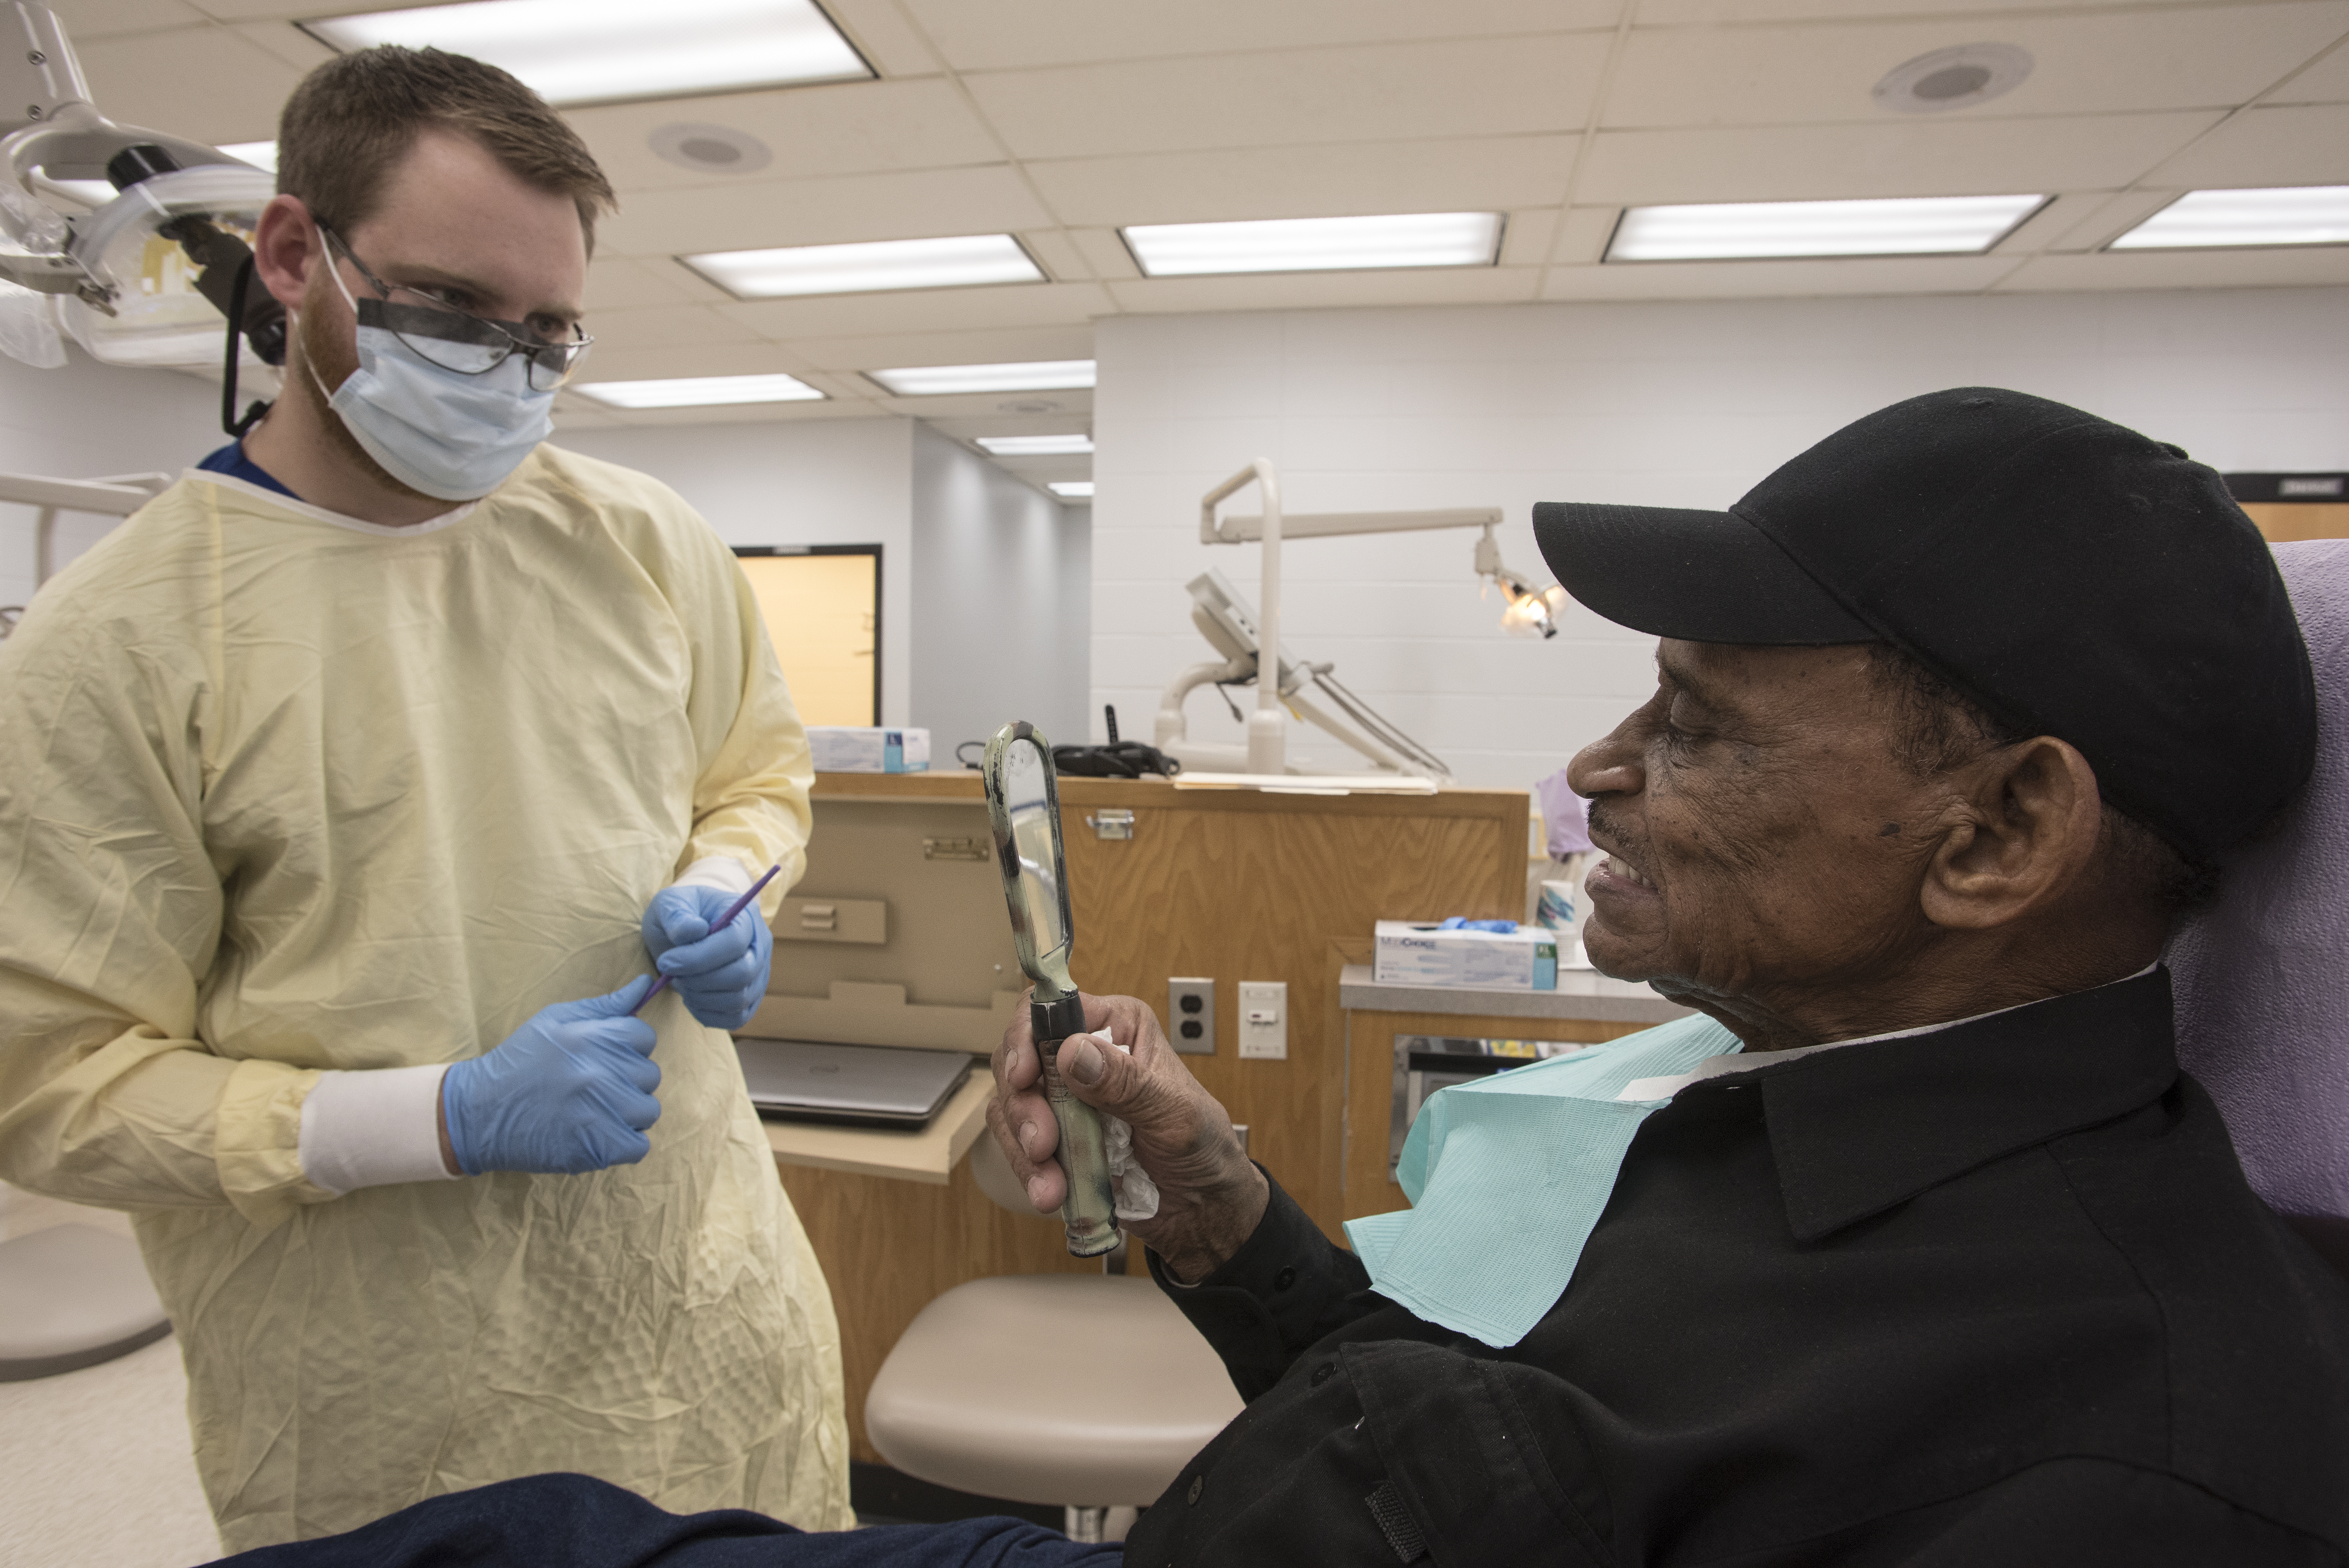 Glover, left, makes minor adjustments to Sutton's dentures during a fitting appointment on Wednesday.